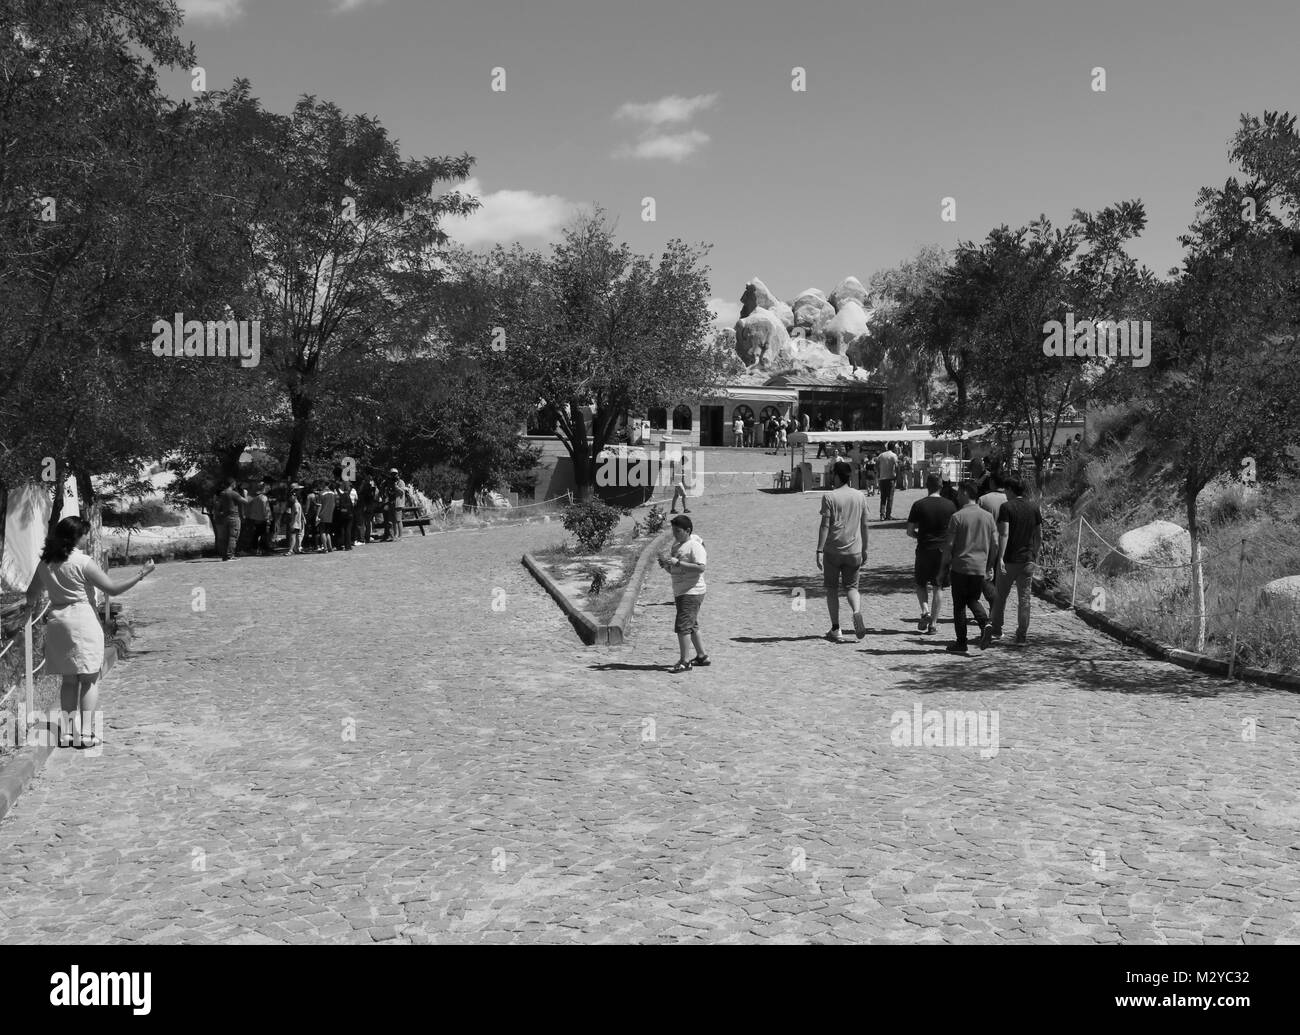 Tourists visiting the National park Open air museum in Cappadocia, Turkey, Goreme - Stock Image